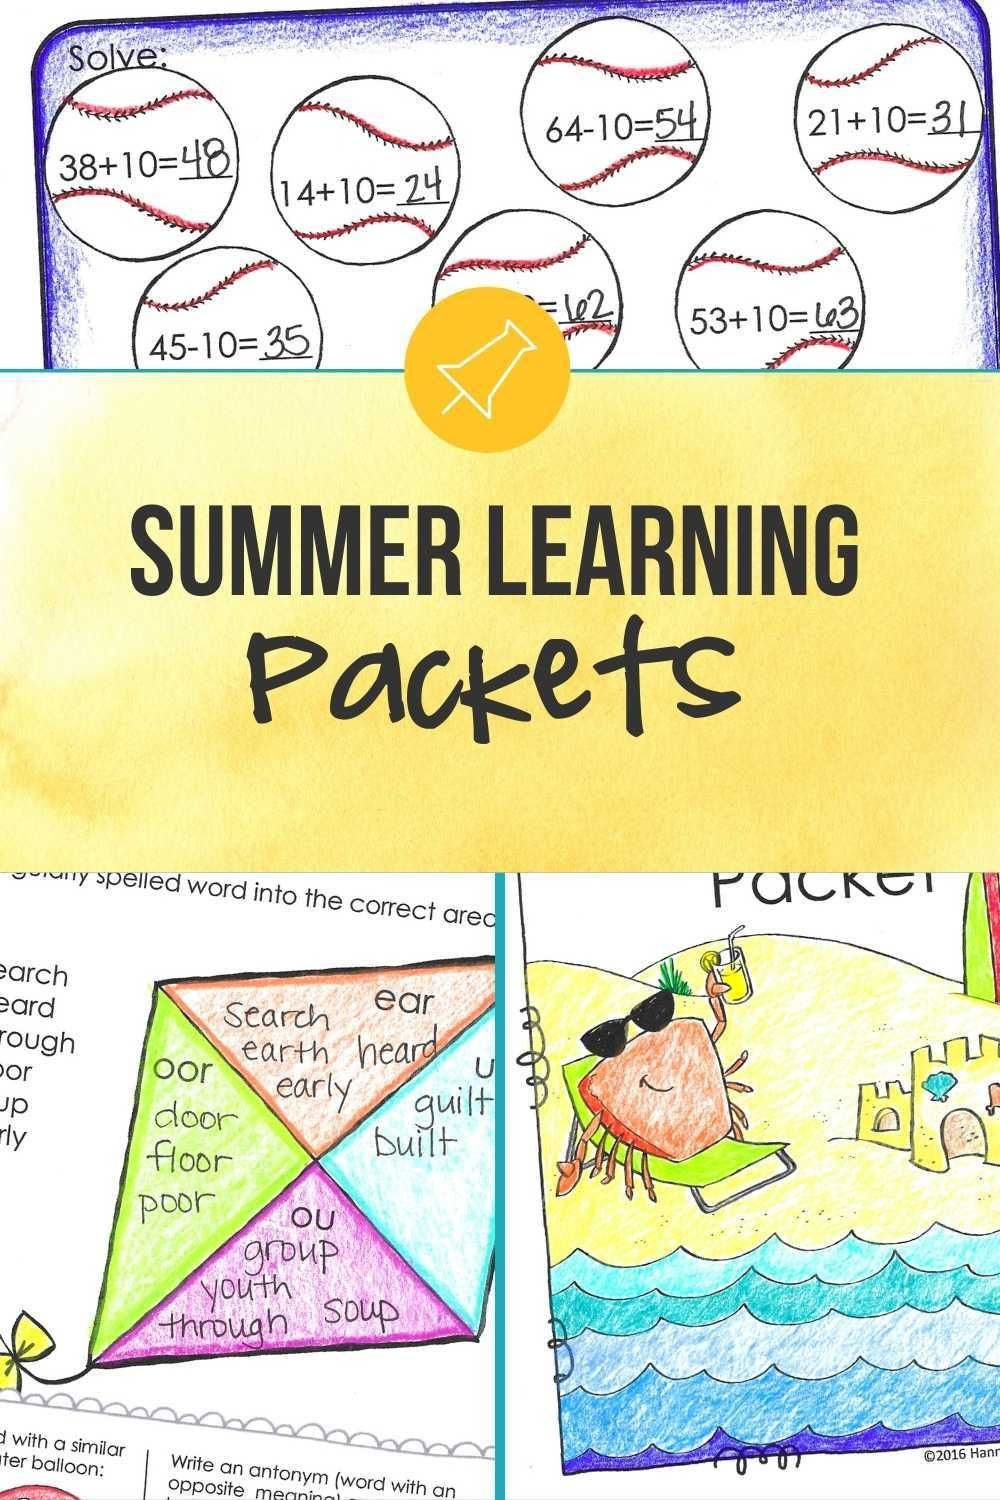 Summer Activity Packets For 1st 2nd And 3rd Grade Teaching Reading Comprehension Elementary Teaching Resources Summer Learning Packet